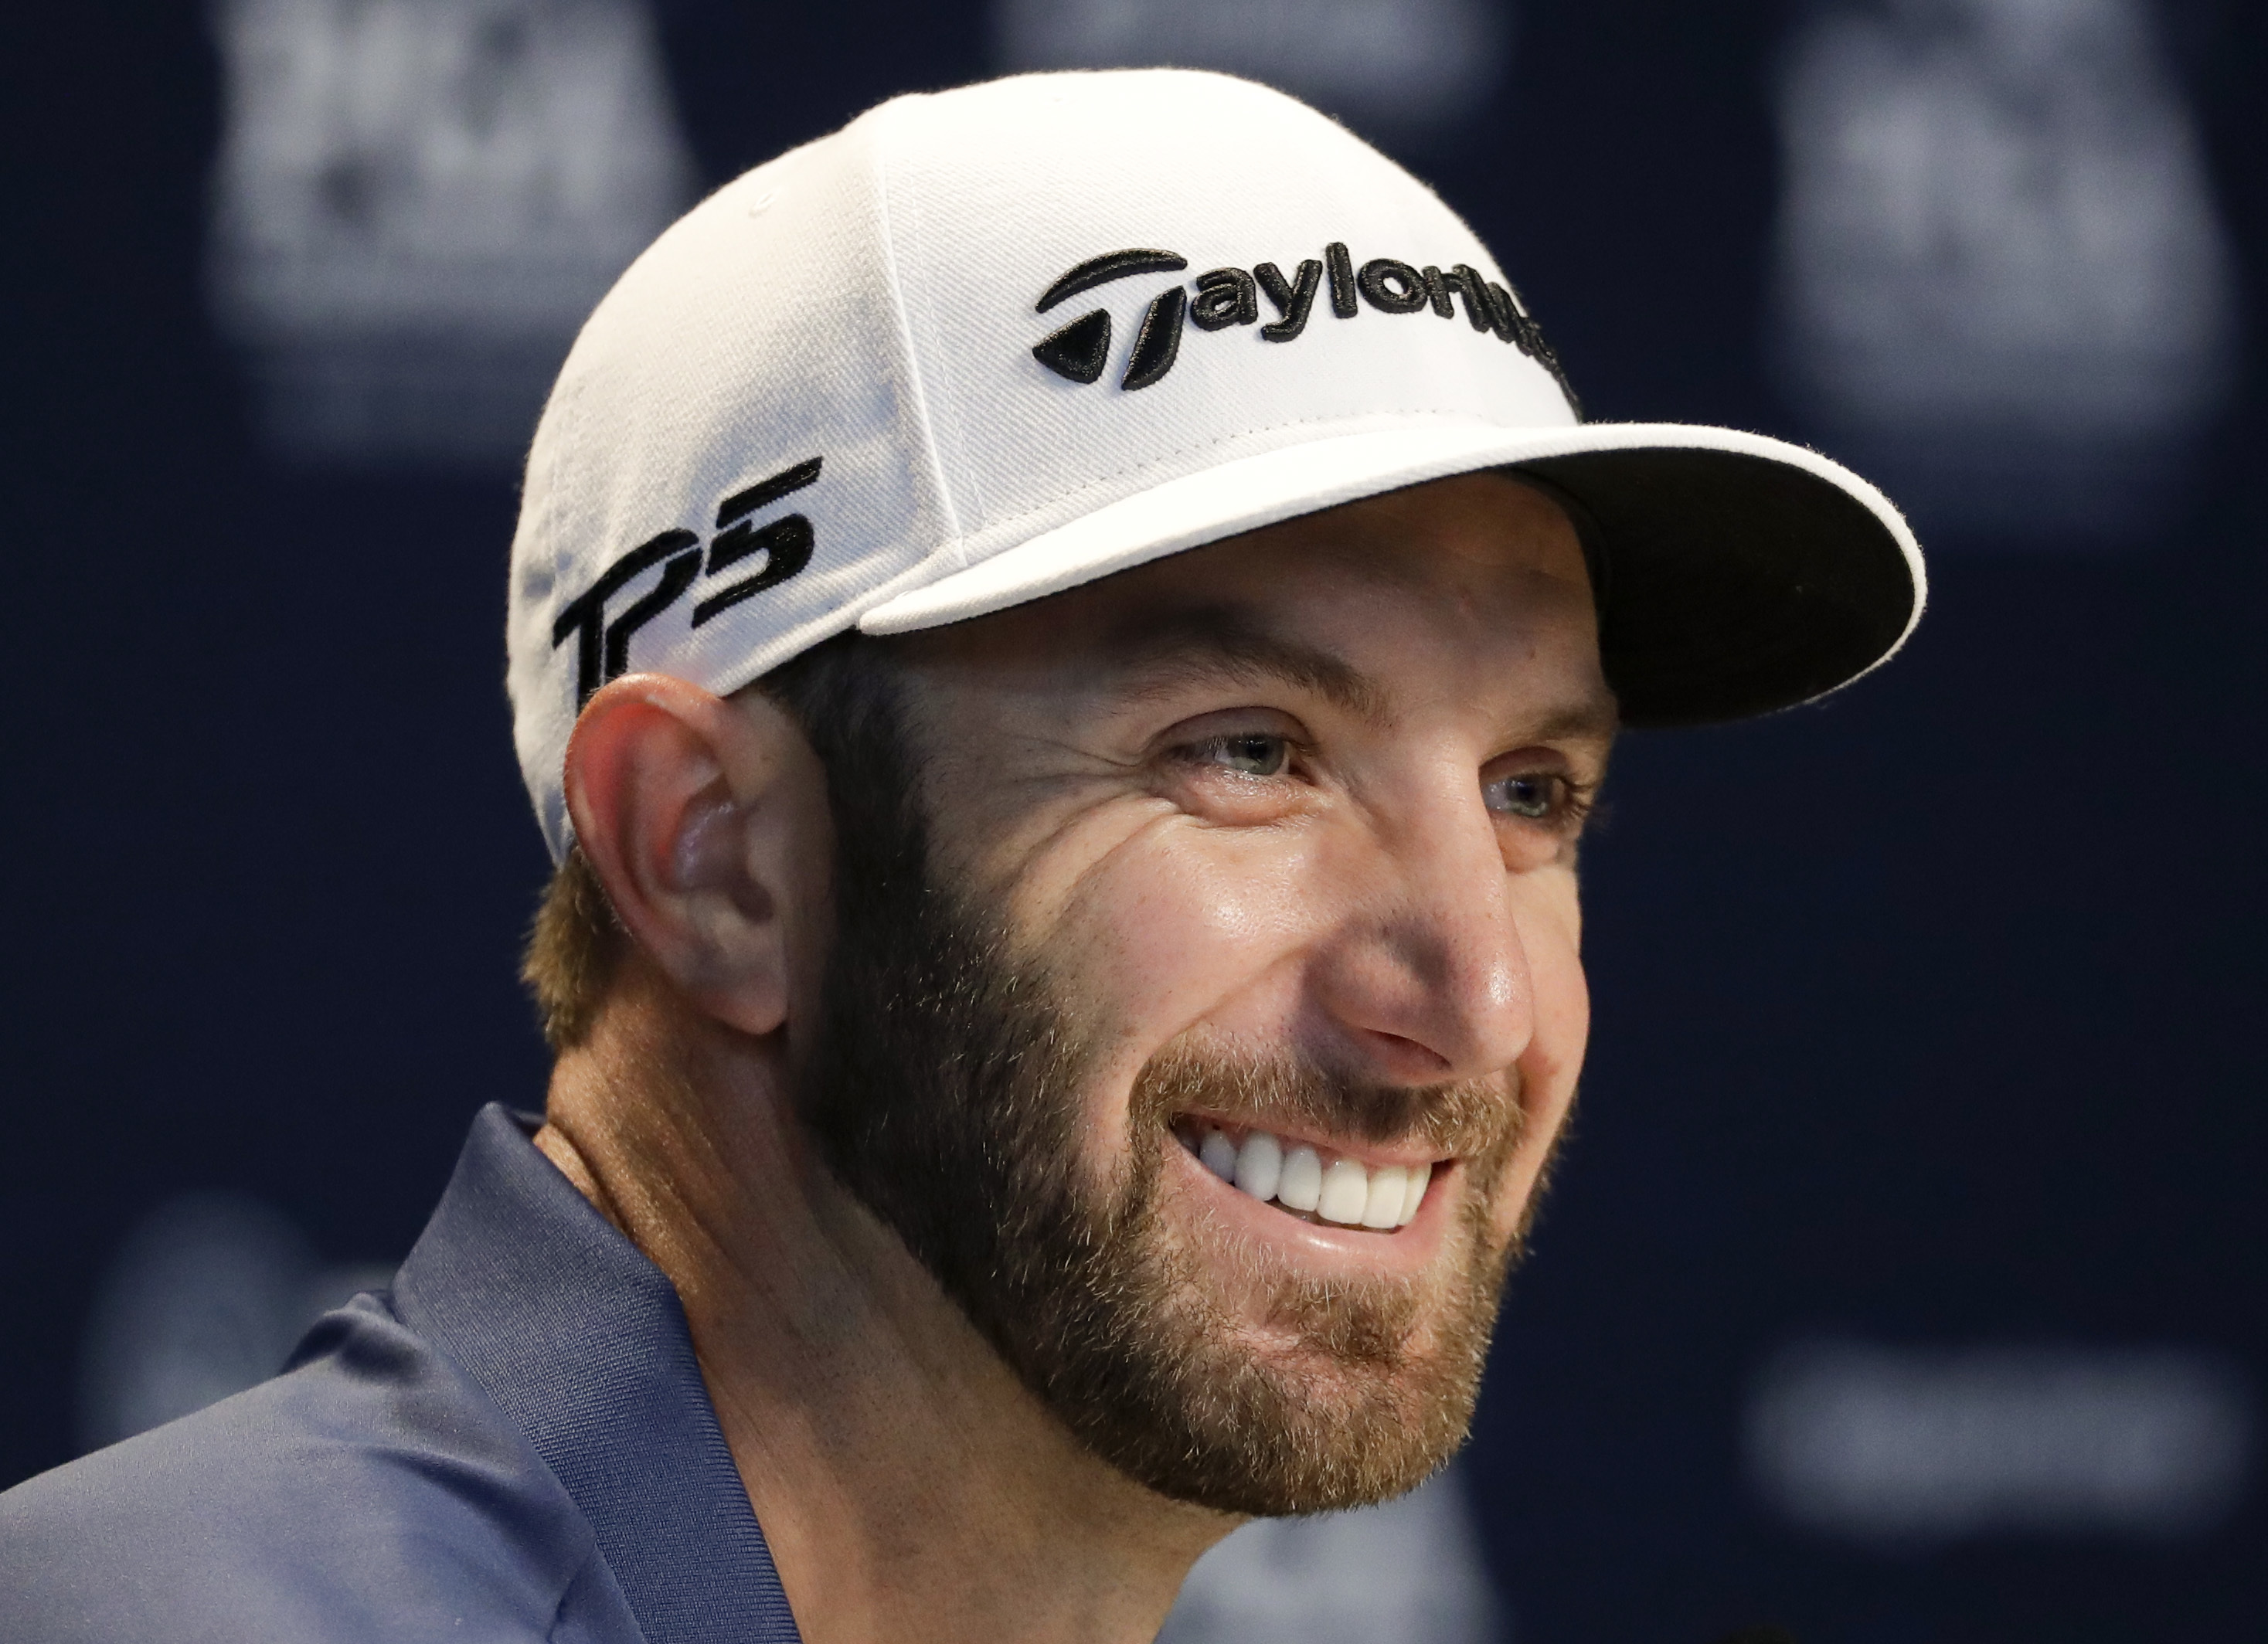 Dustin Johnson speaks during a news conference at the PGA Championship golf tournament at the Quail Hollow Club Tuesday, Aug. 8, 2017, in Charlotte, N.C. (AP Photo/Chris Carlson)